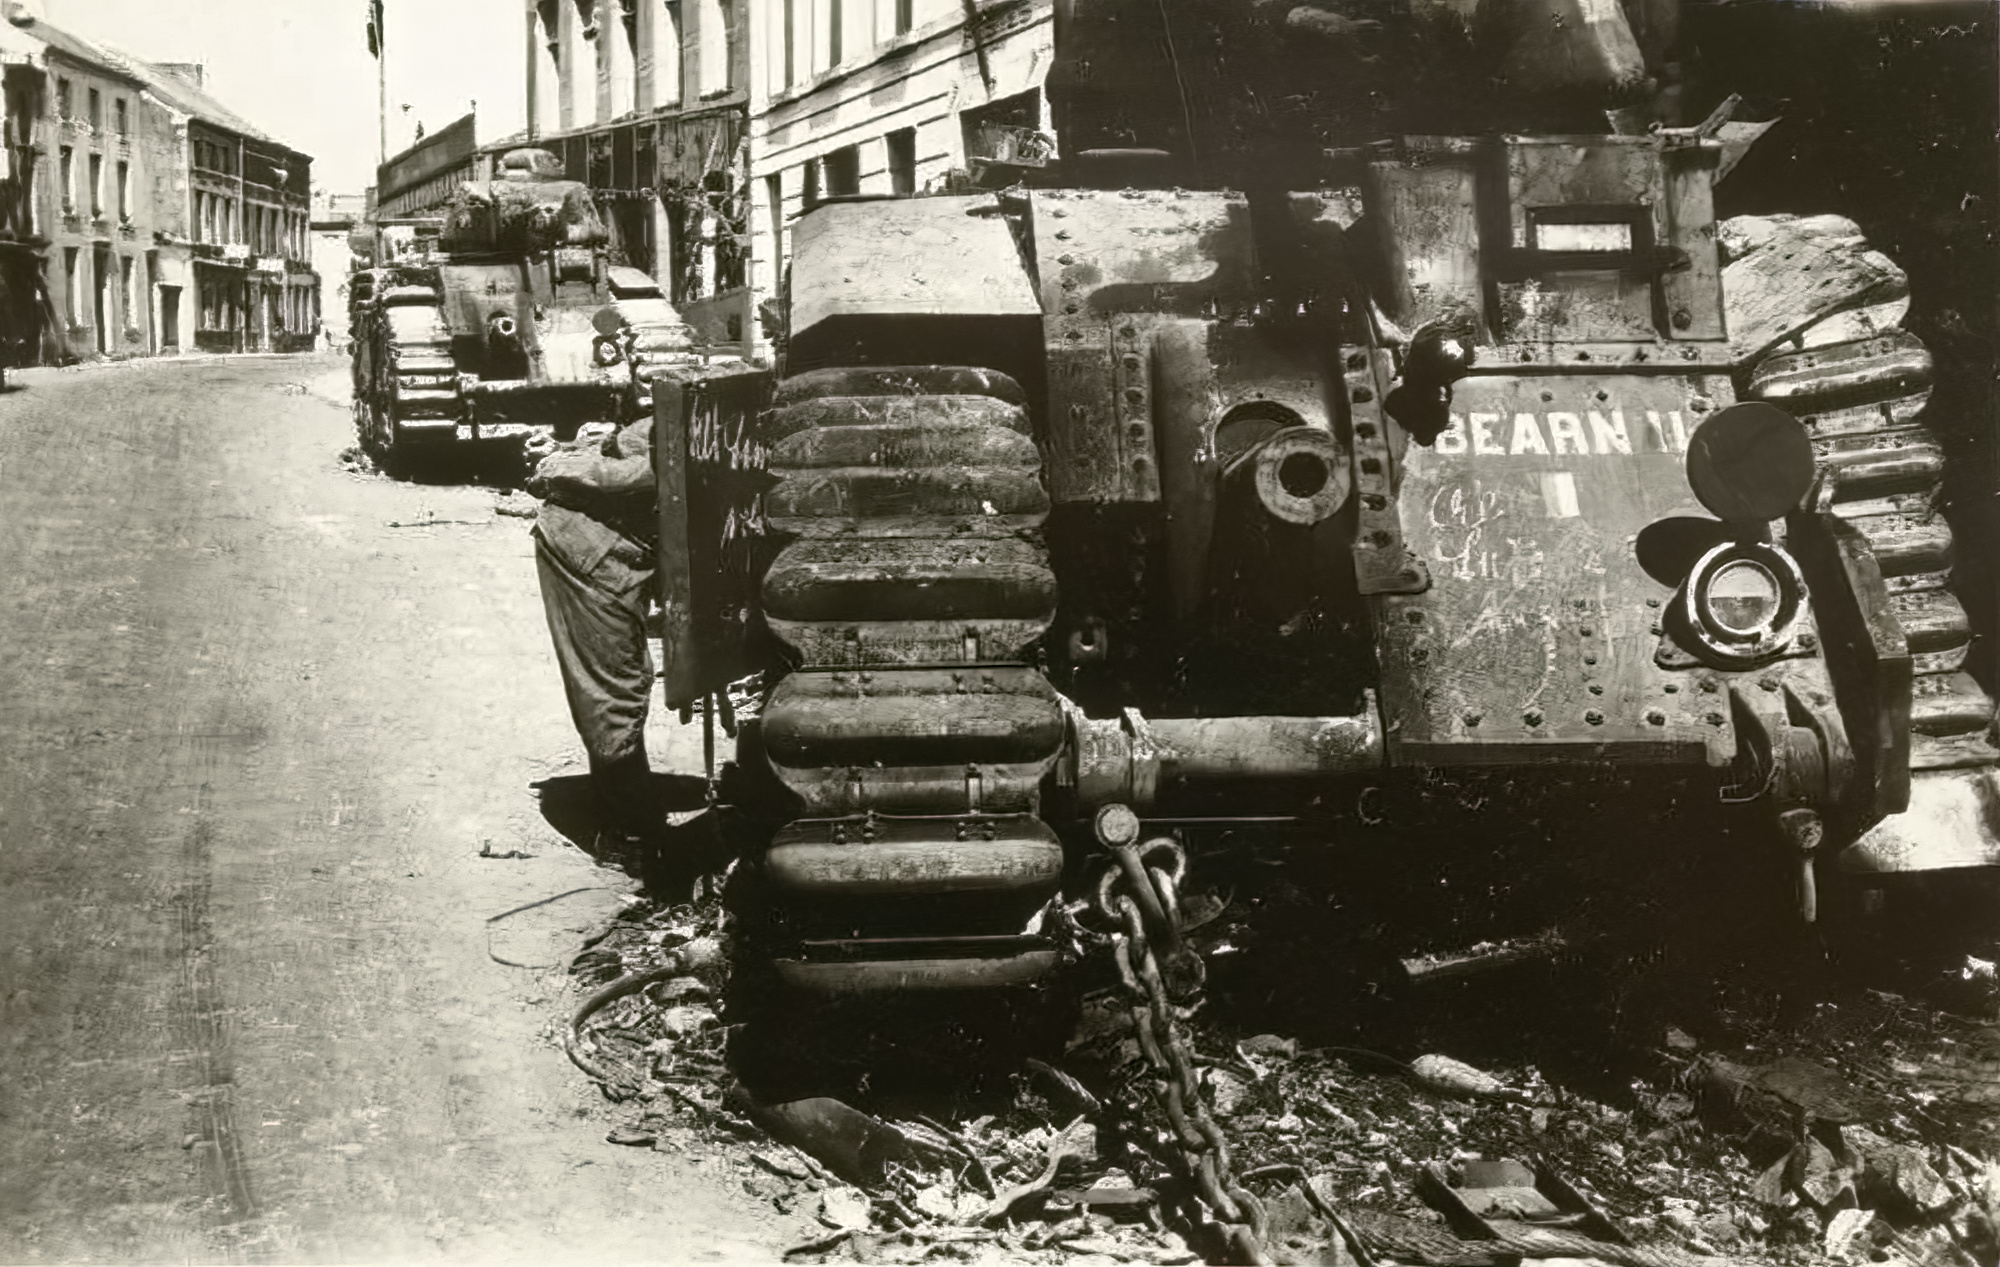 French Army Renault Char B1 named Bearn II knocked out during the battle of France 1940 ebay 01